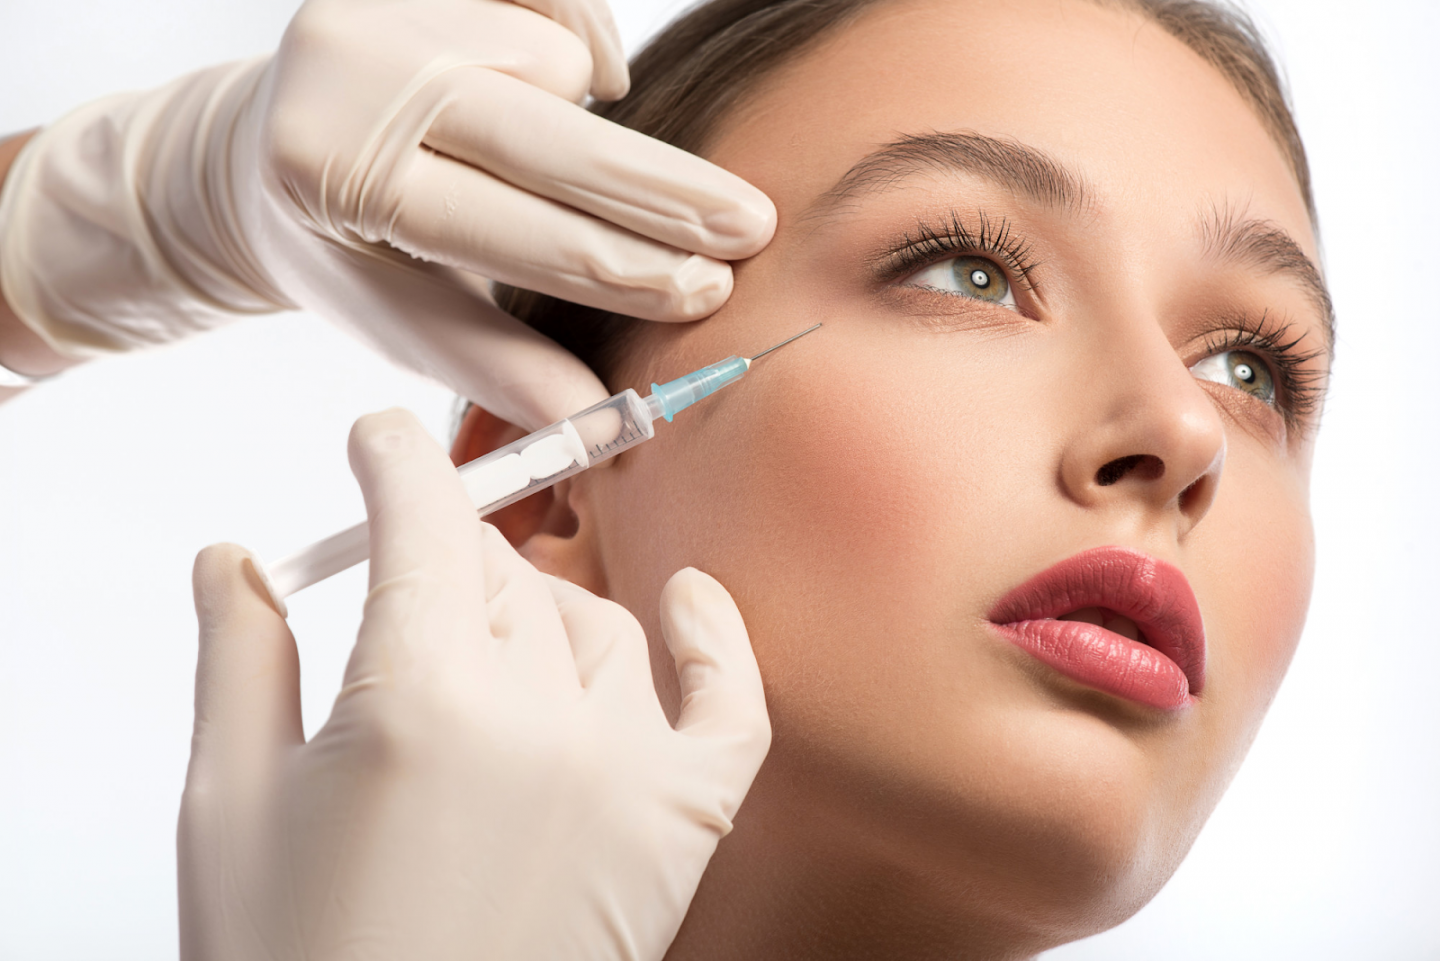 How Do Botox Injections Work? The Facts You Need to Know